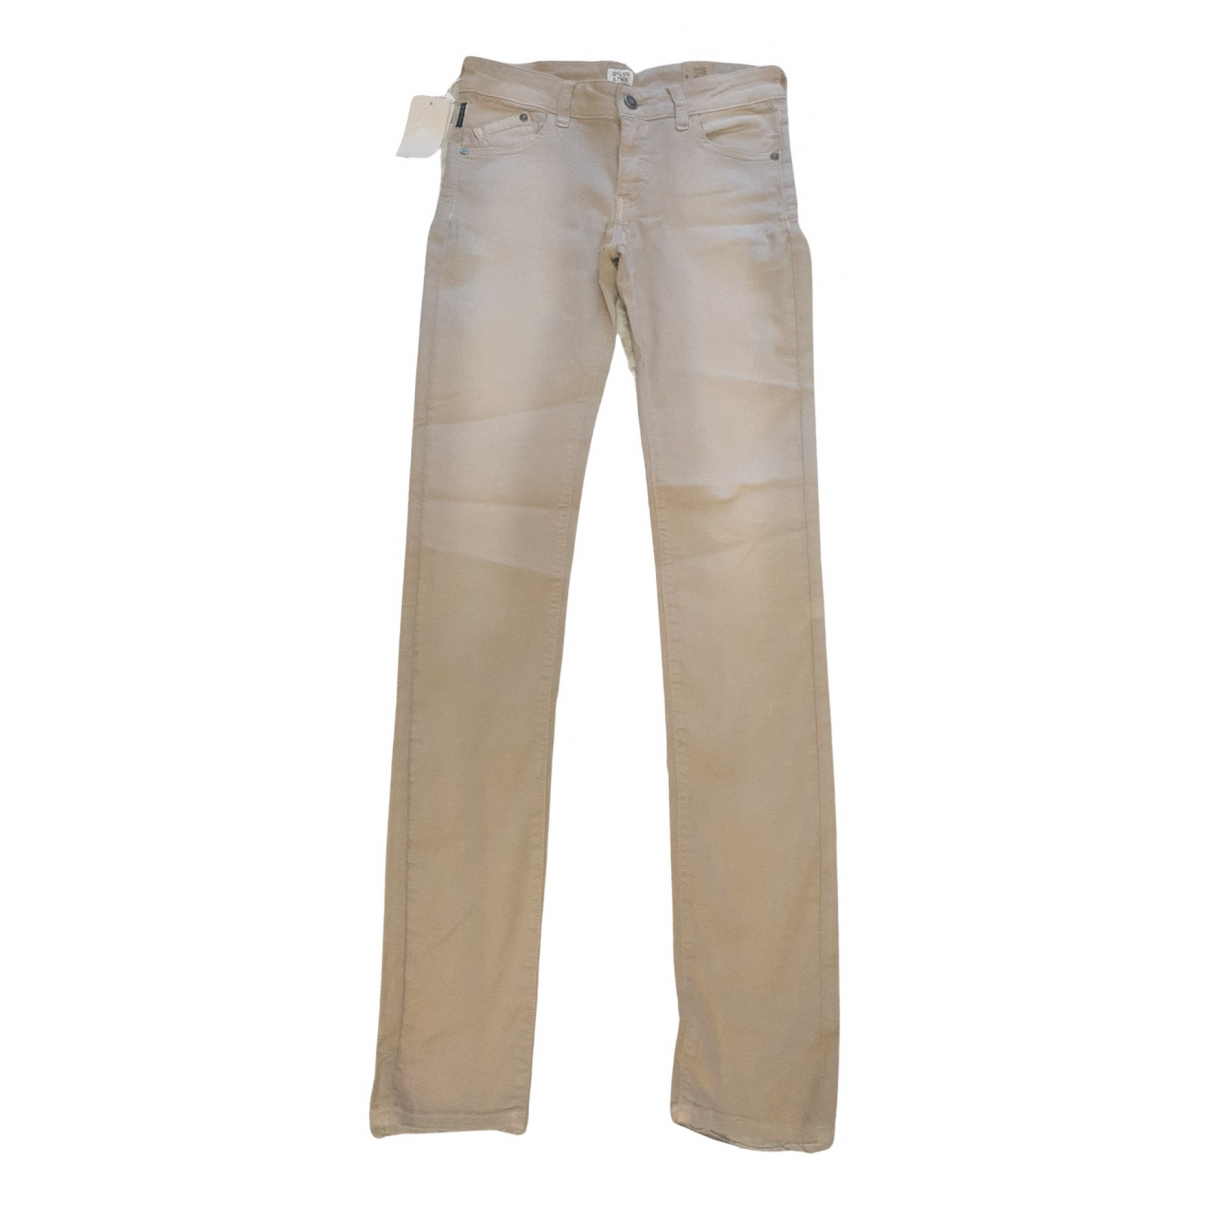 Armani Jeans N Beige Cotton Trousers for Kids 16 years - M UK